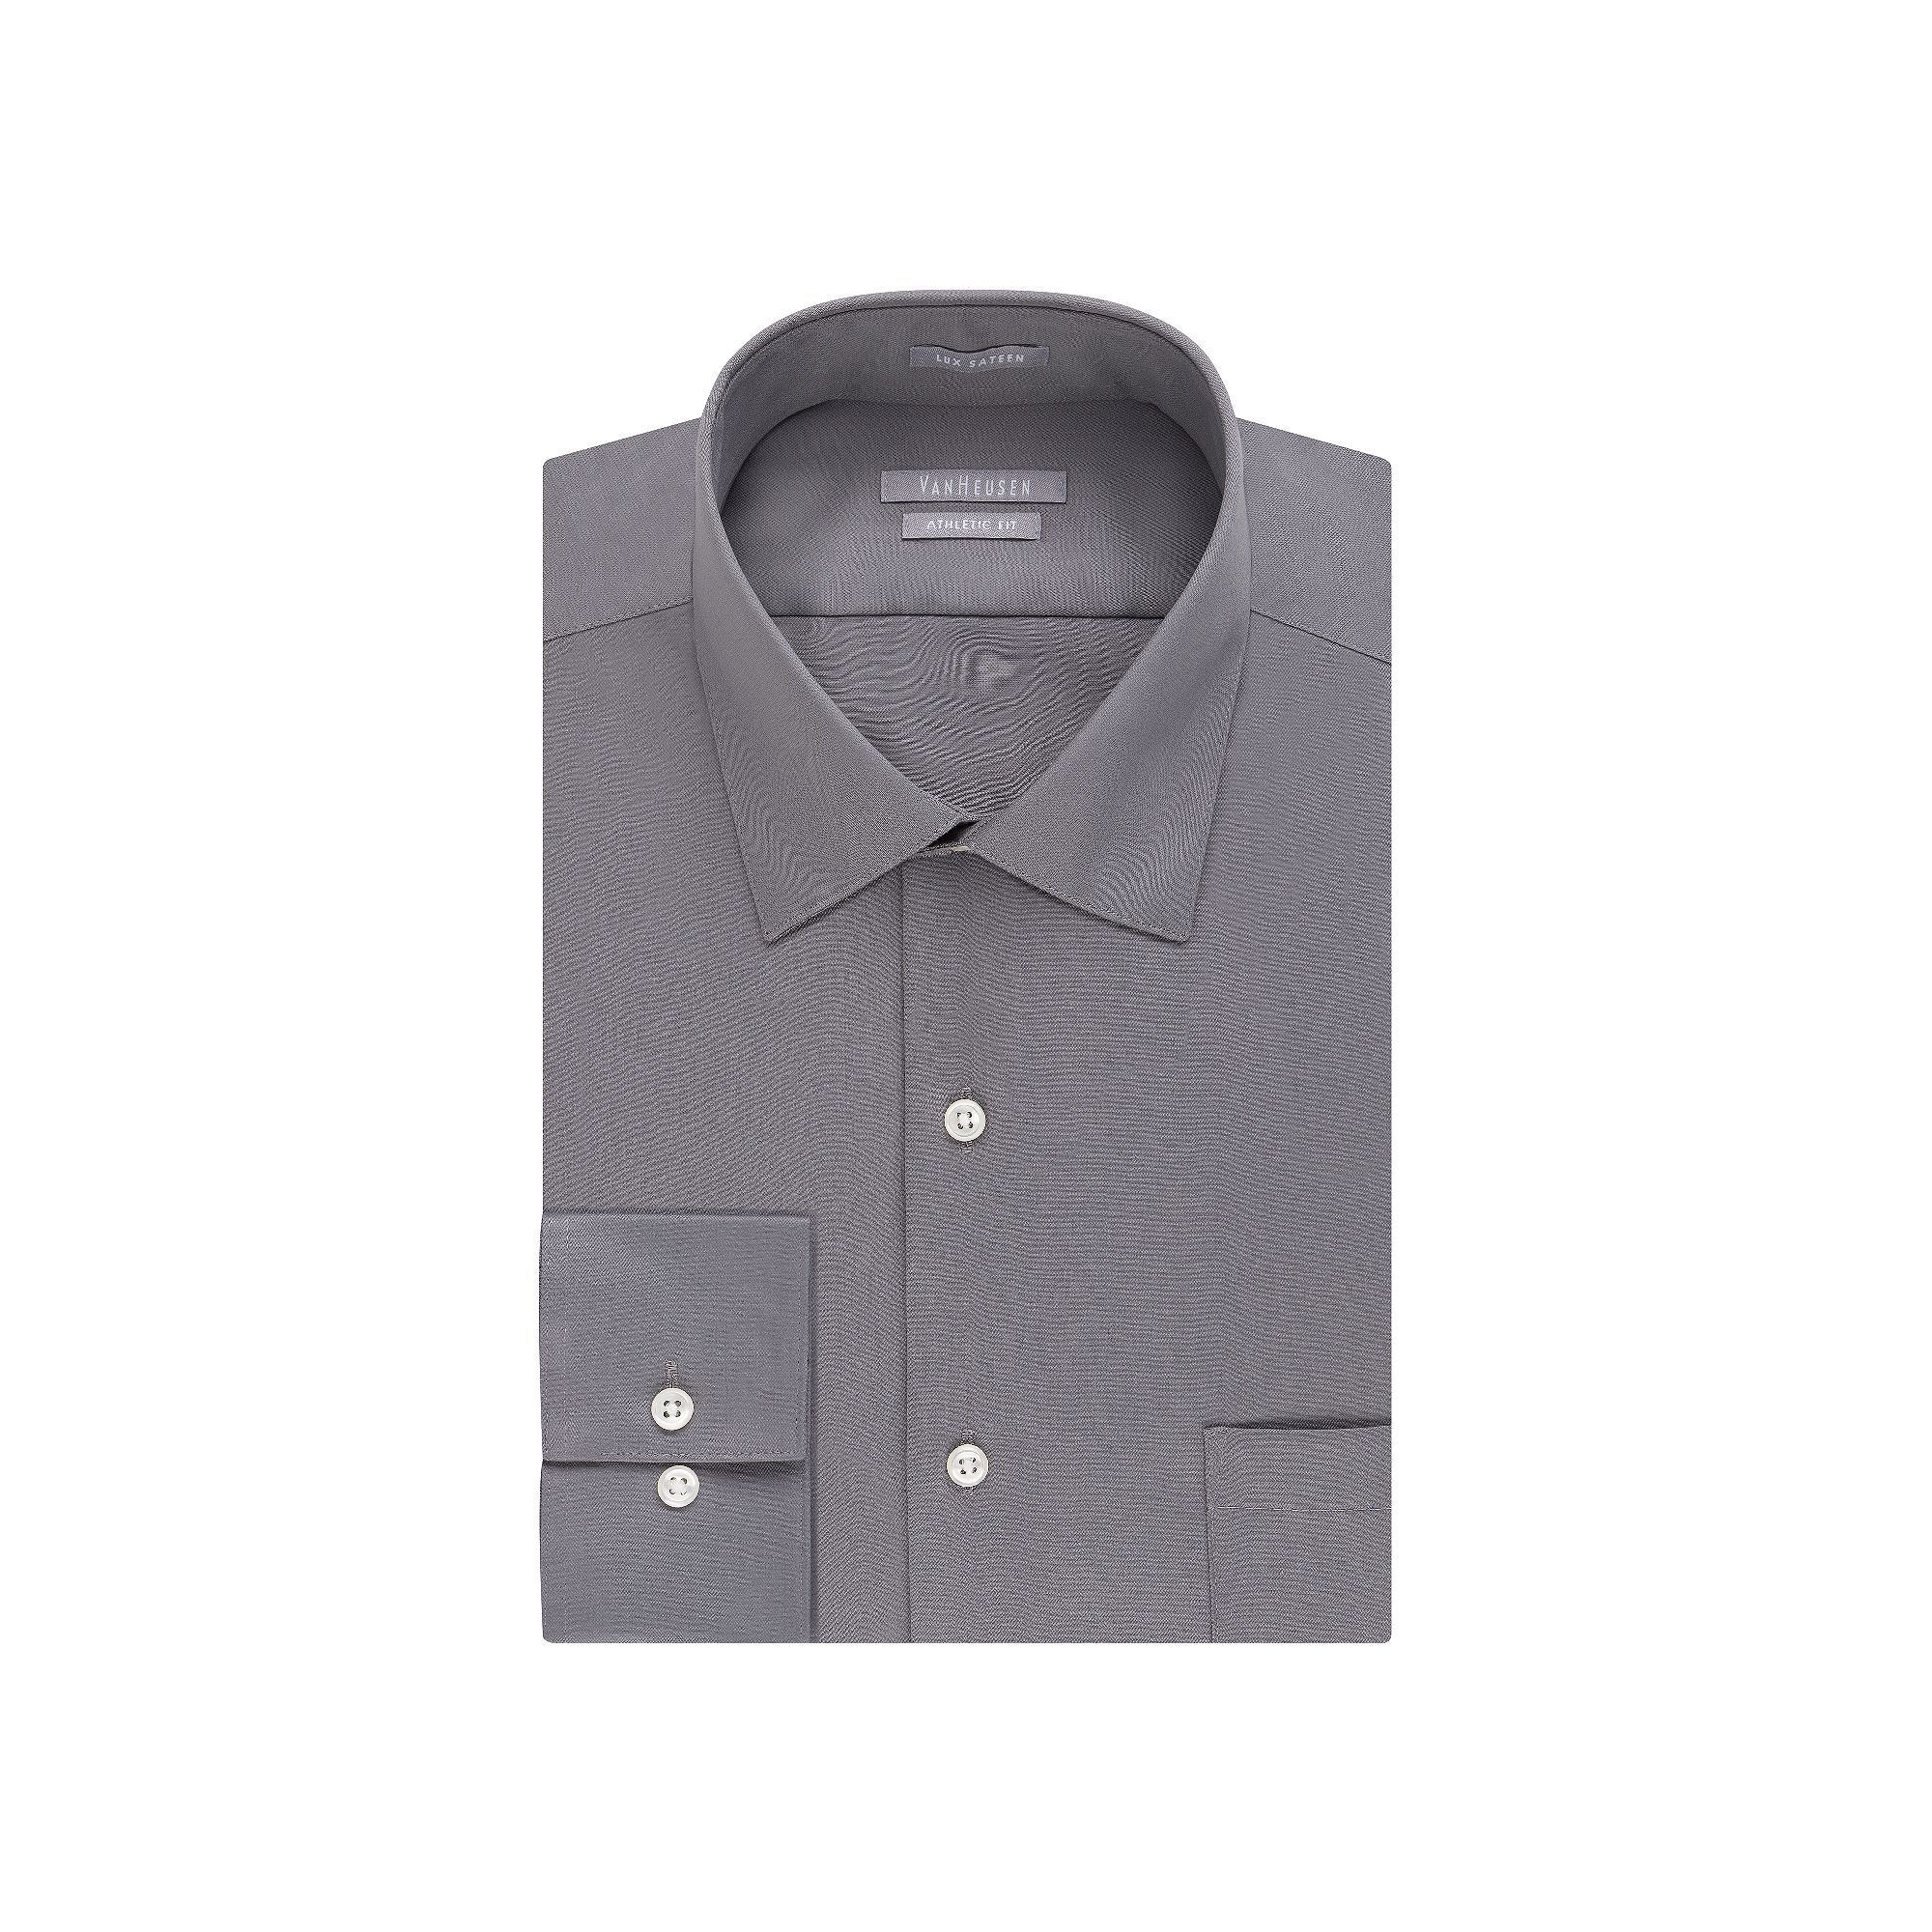 Van heusen shirts size guide also chad crowley productions rh chadcrowleyproductions